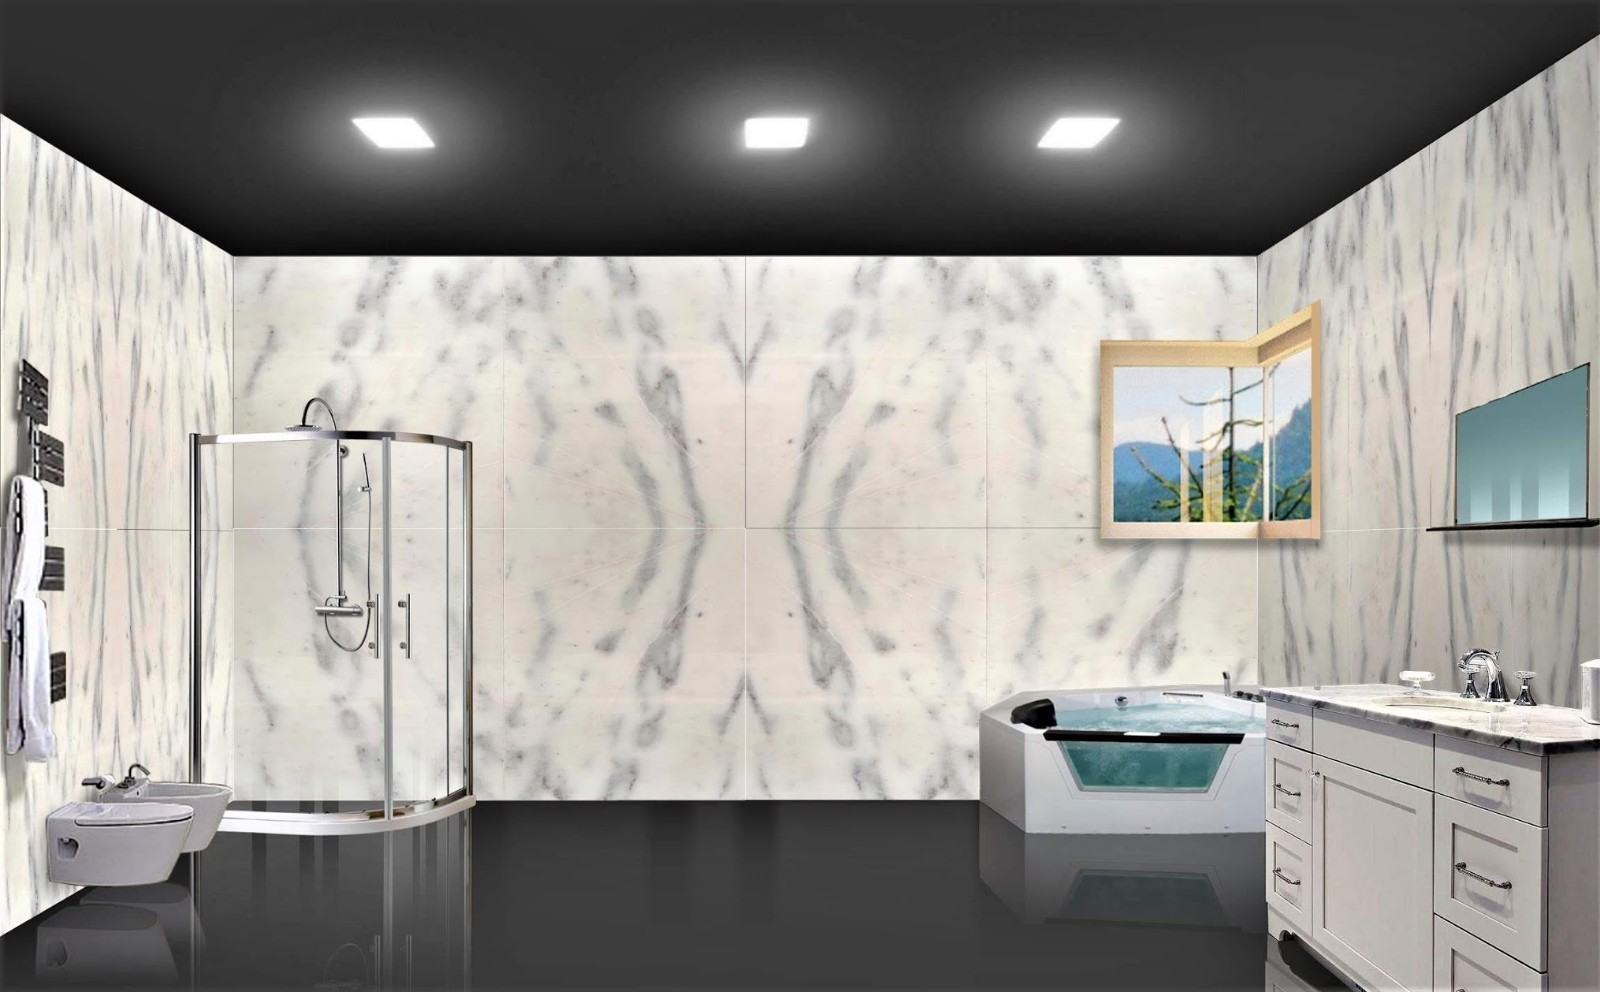 Bathroom design 1 (Walls)